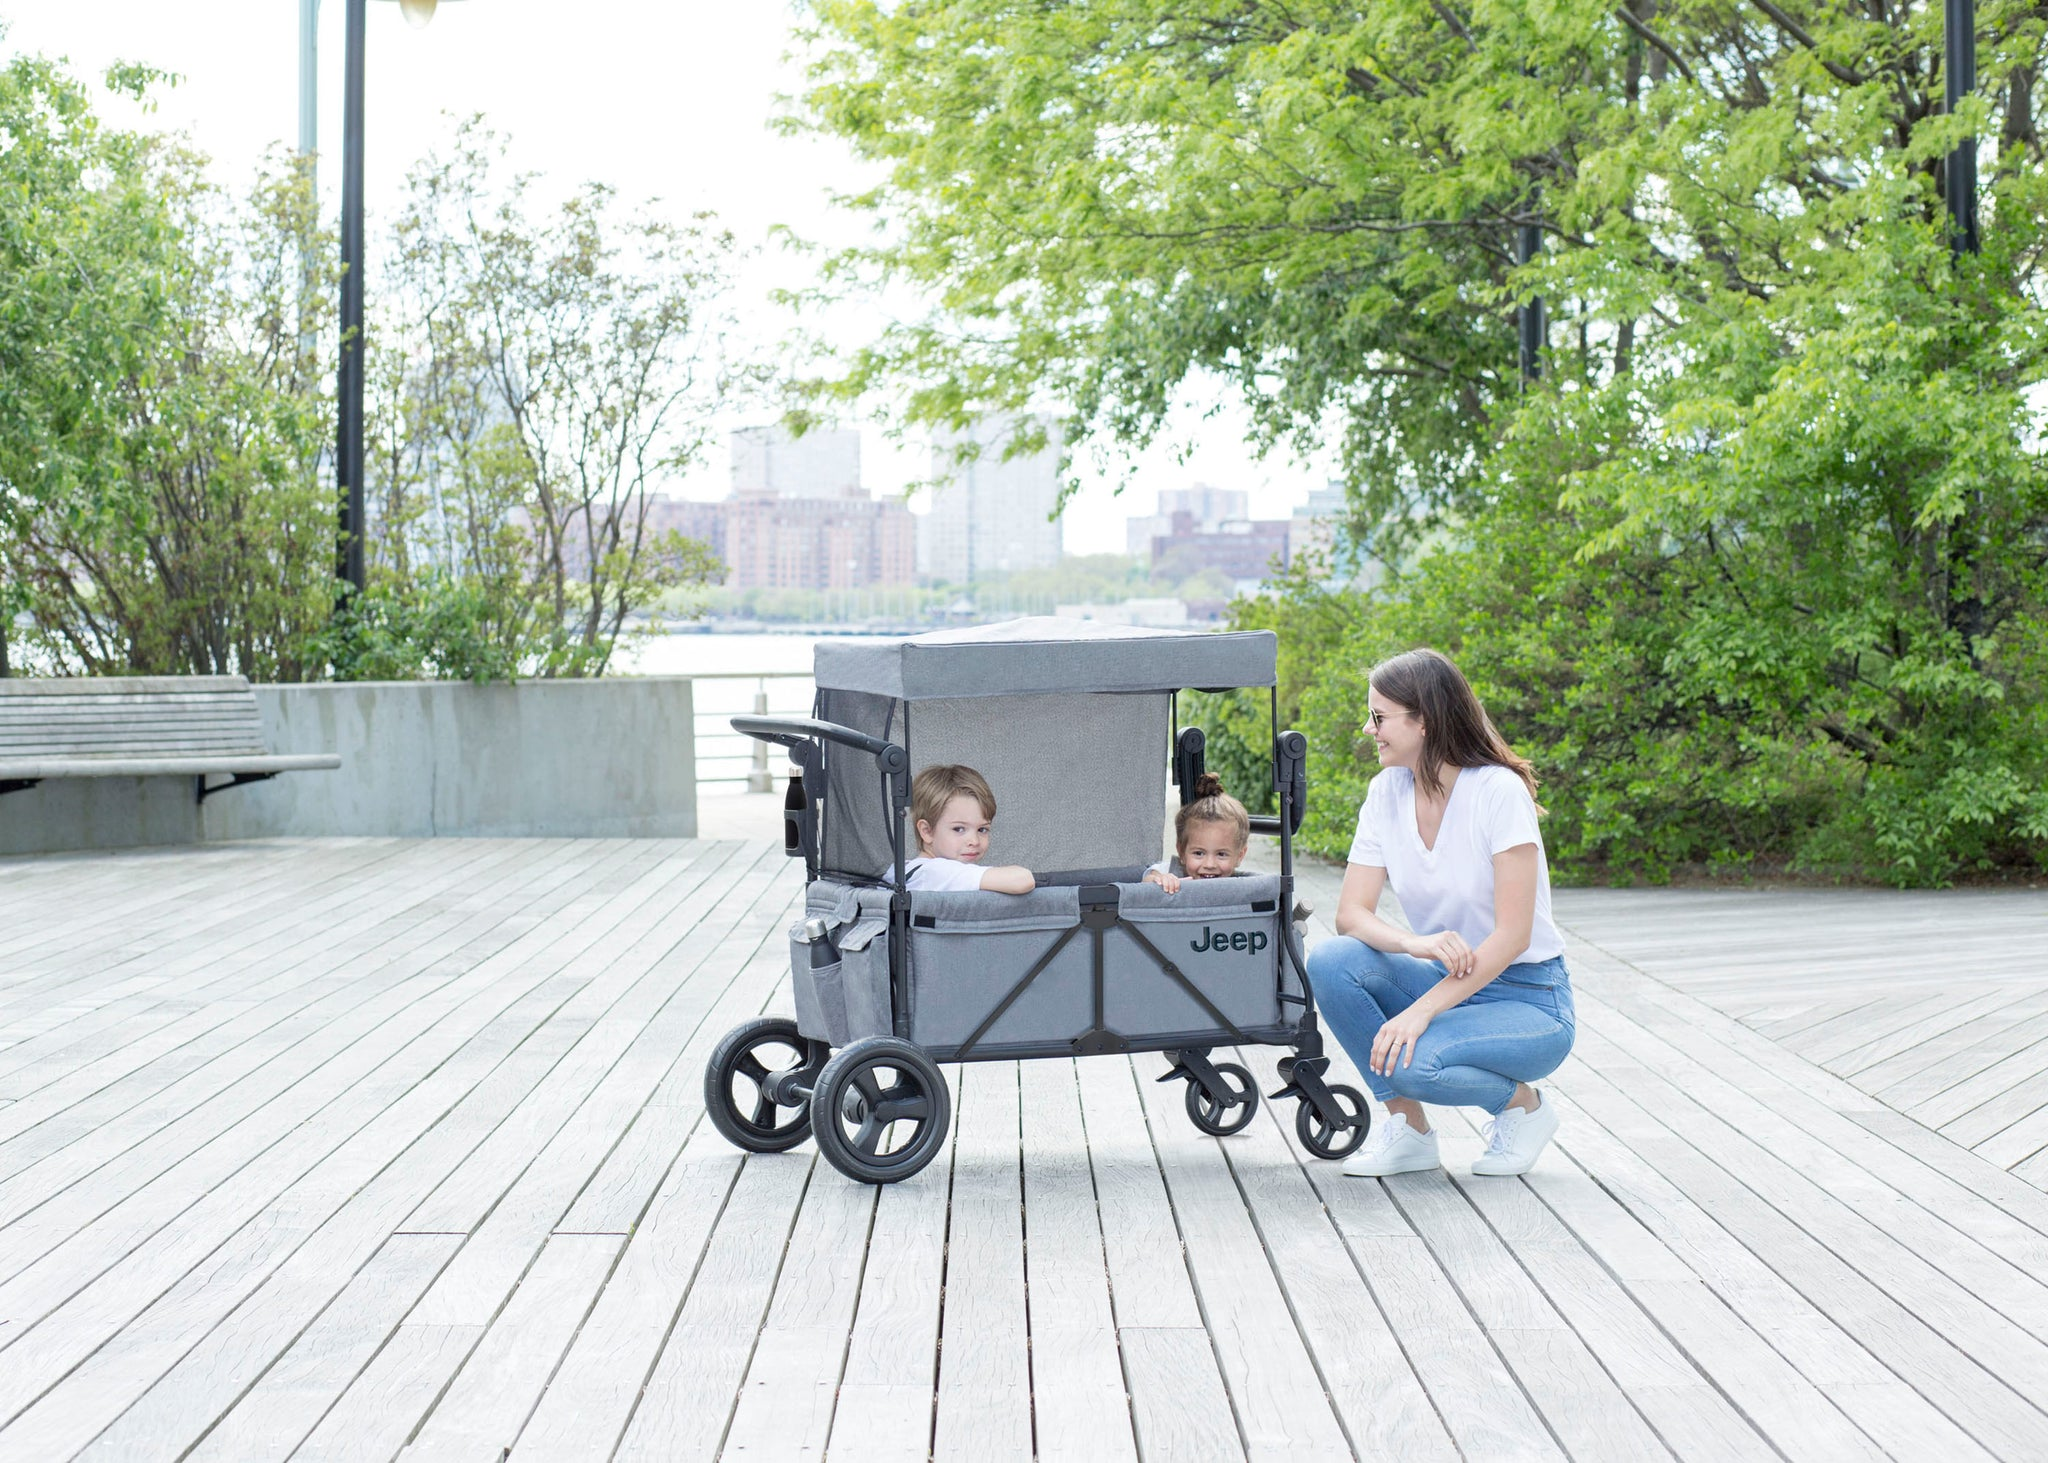 Jeep Wrangler Stroller Wagon Grey (2148), Lifestyle View 3